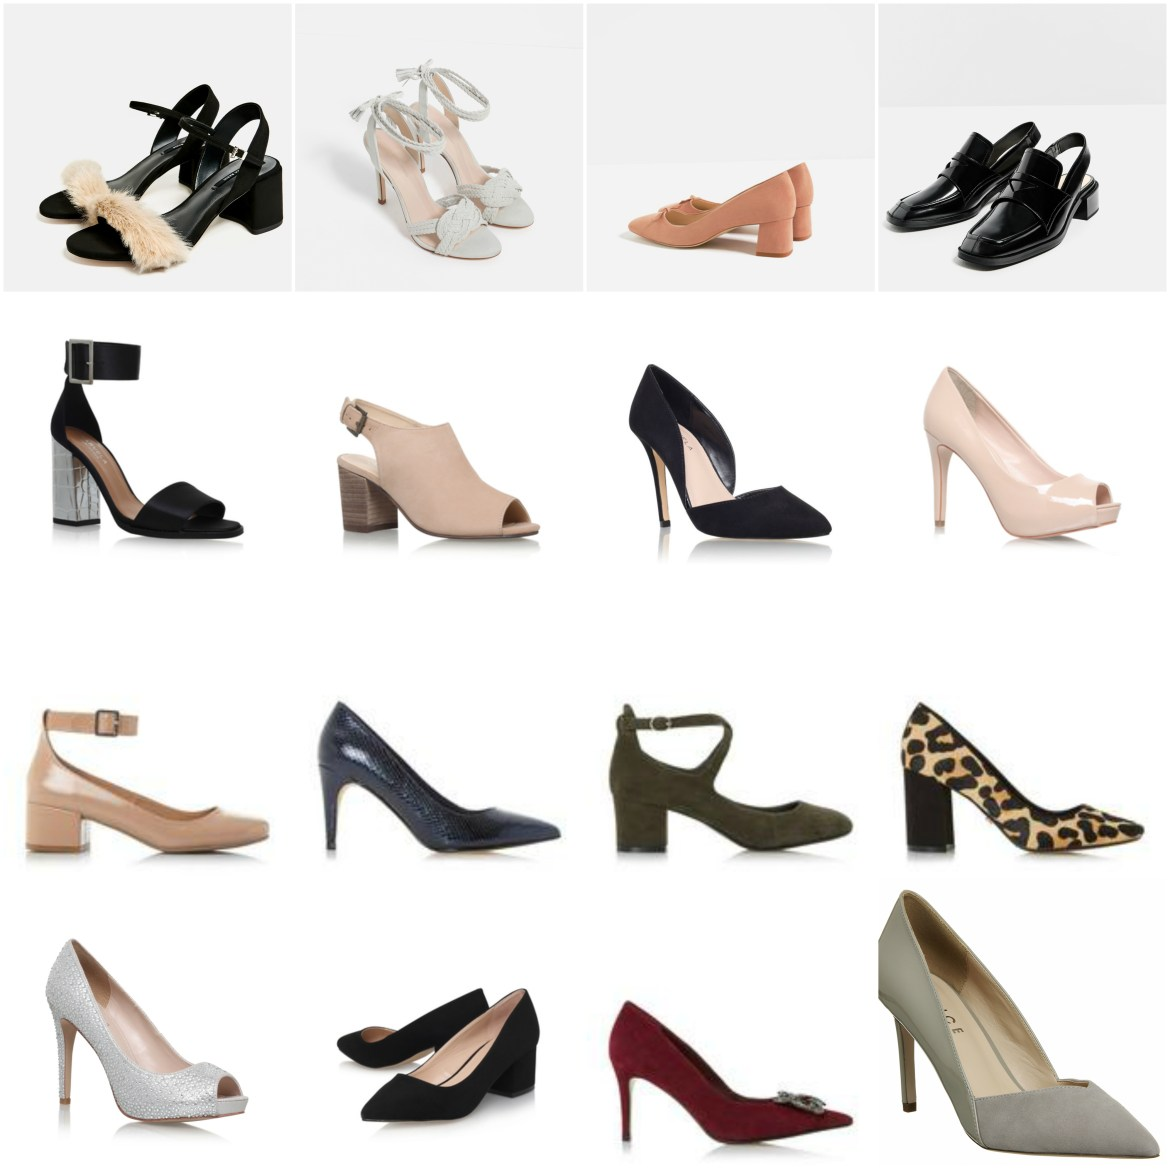 product grid of comfortable heels